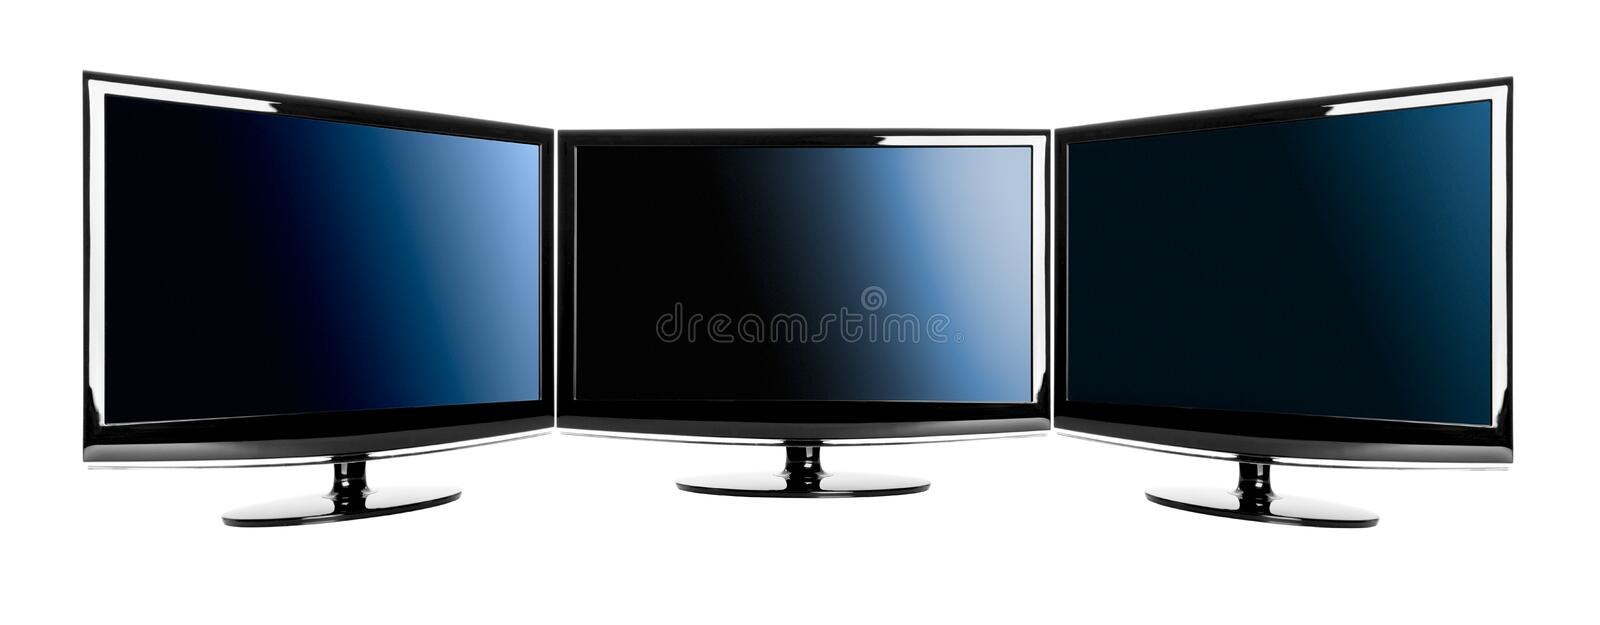 Three lcd TV's. Three modern lcd TV's isolated over a white background royalty free stock image